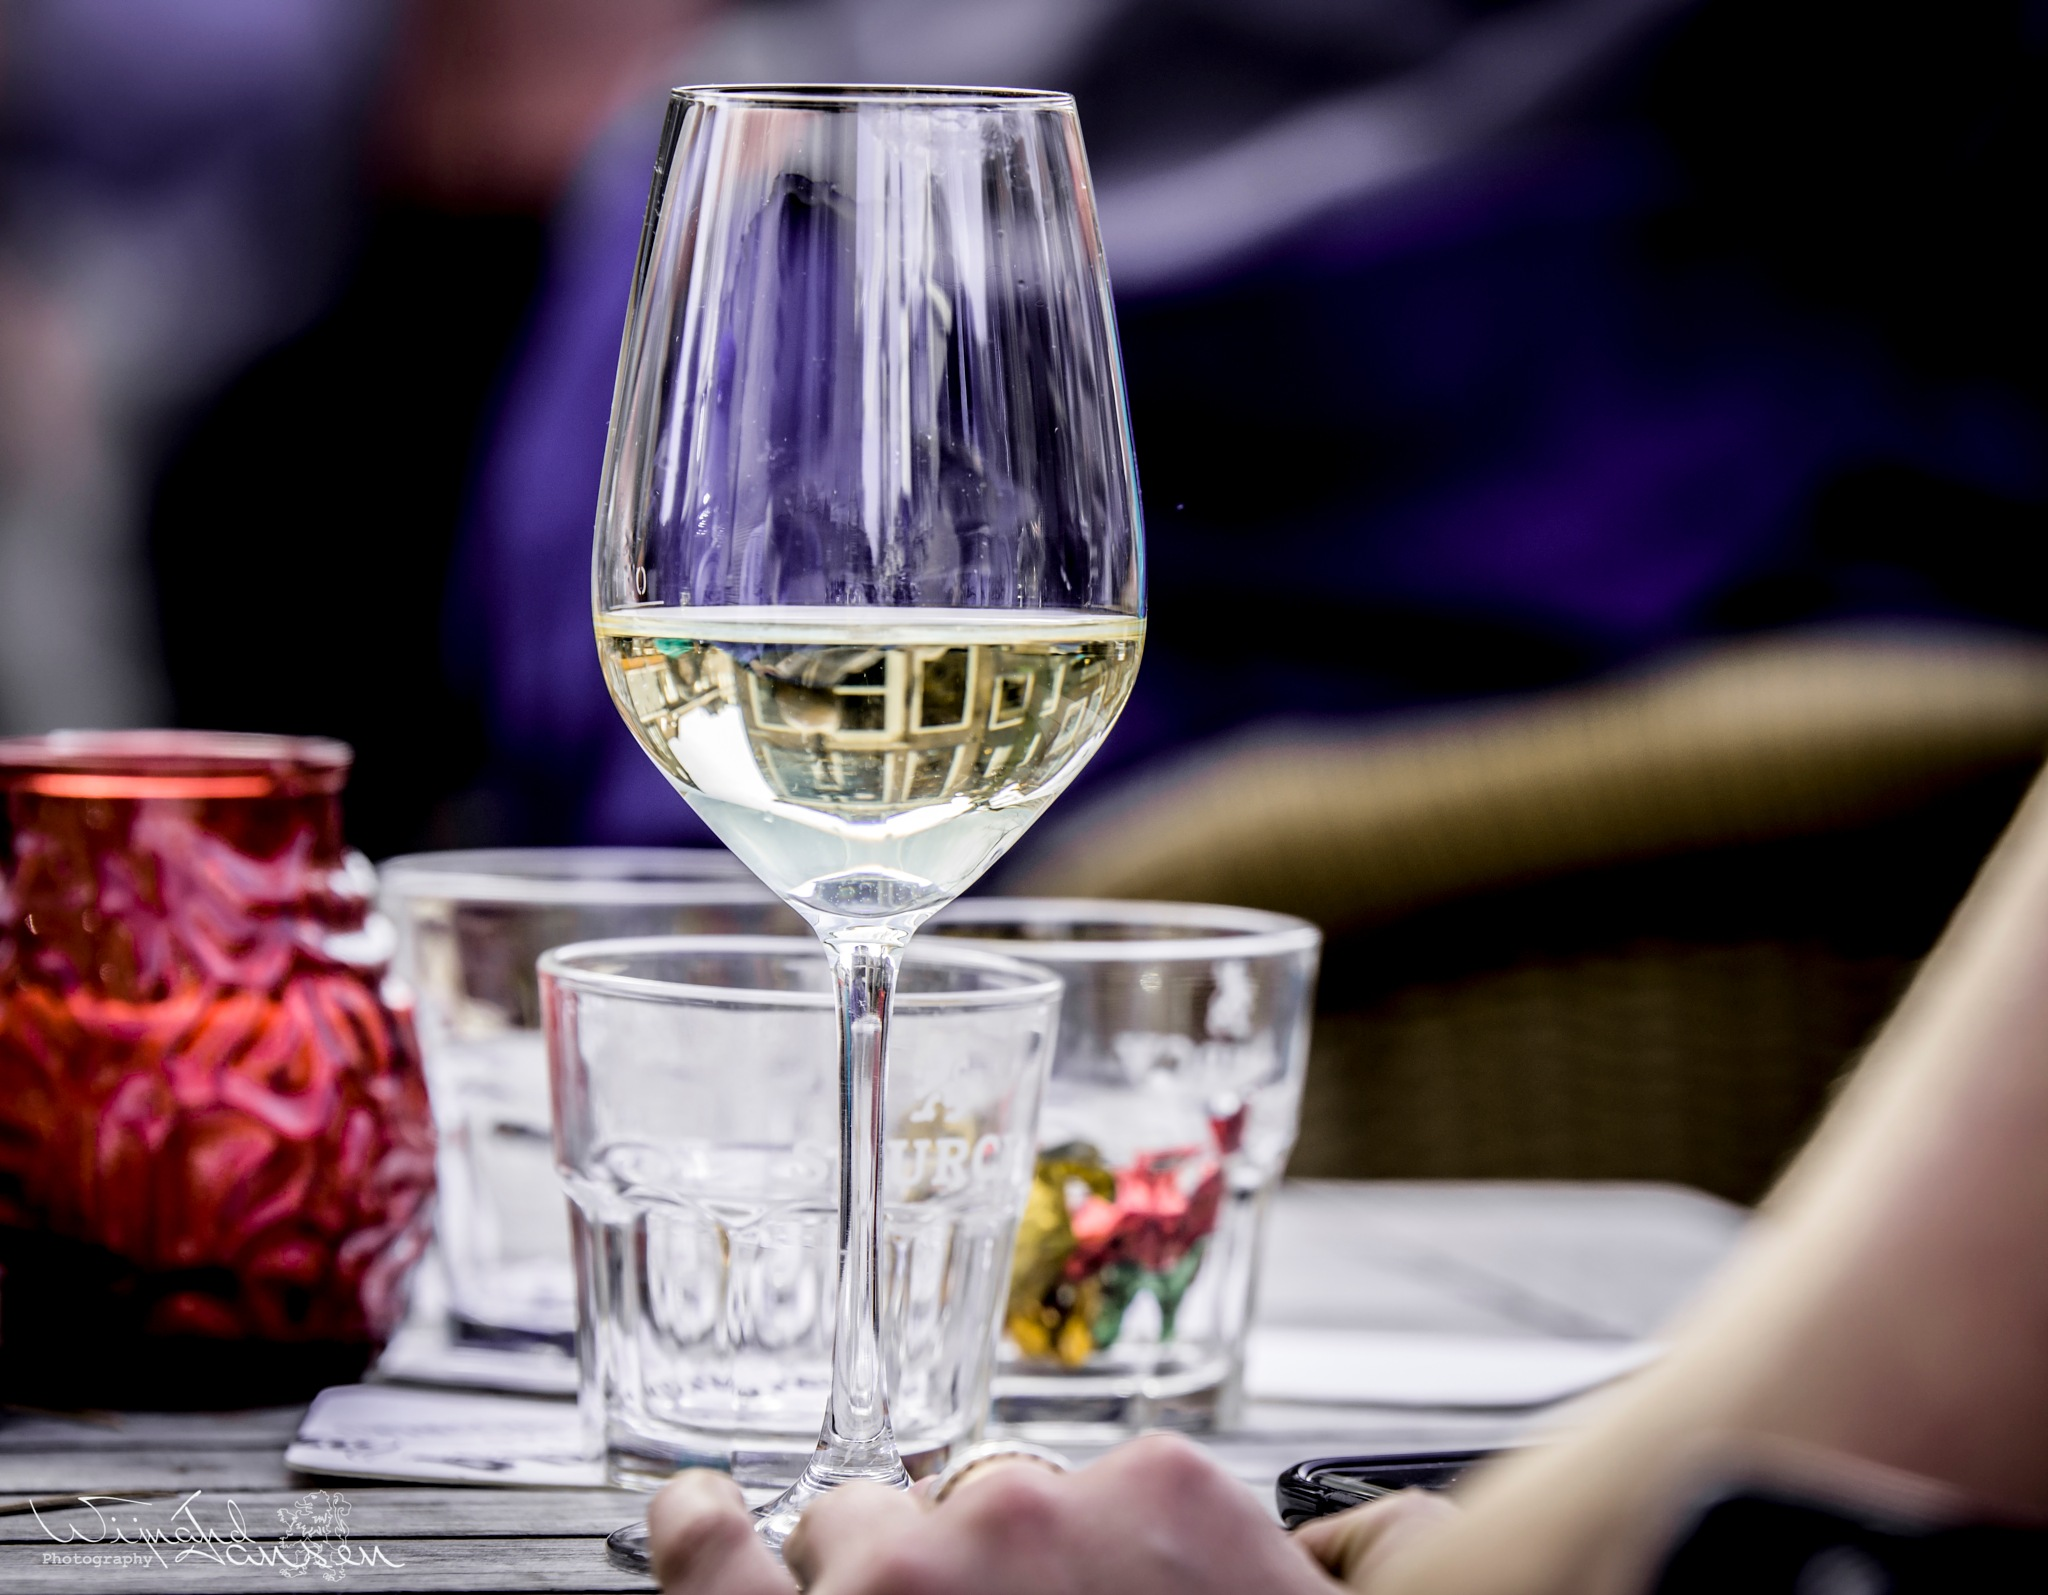 A good glass of wine will make your day nice and sweet by Wijnand Jansen